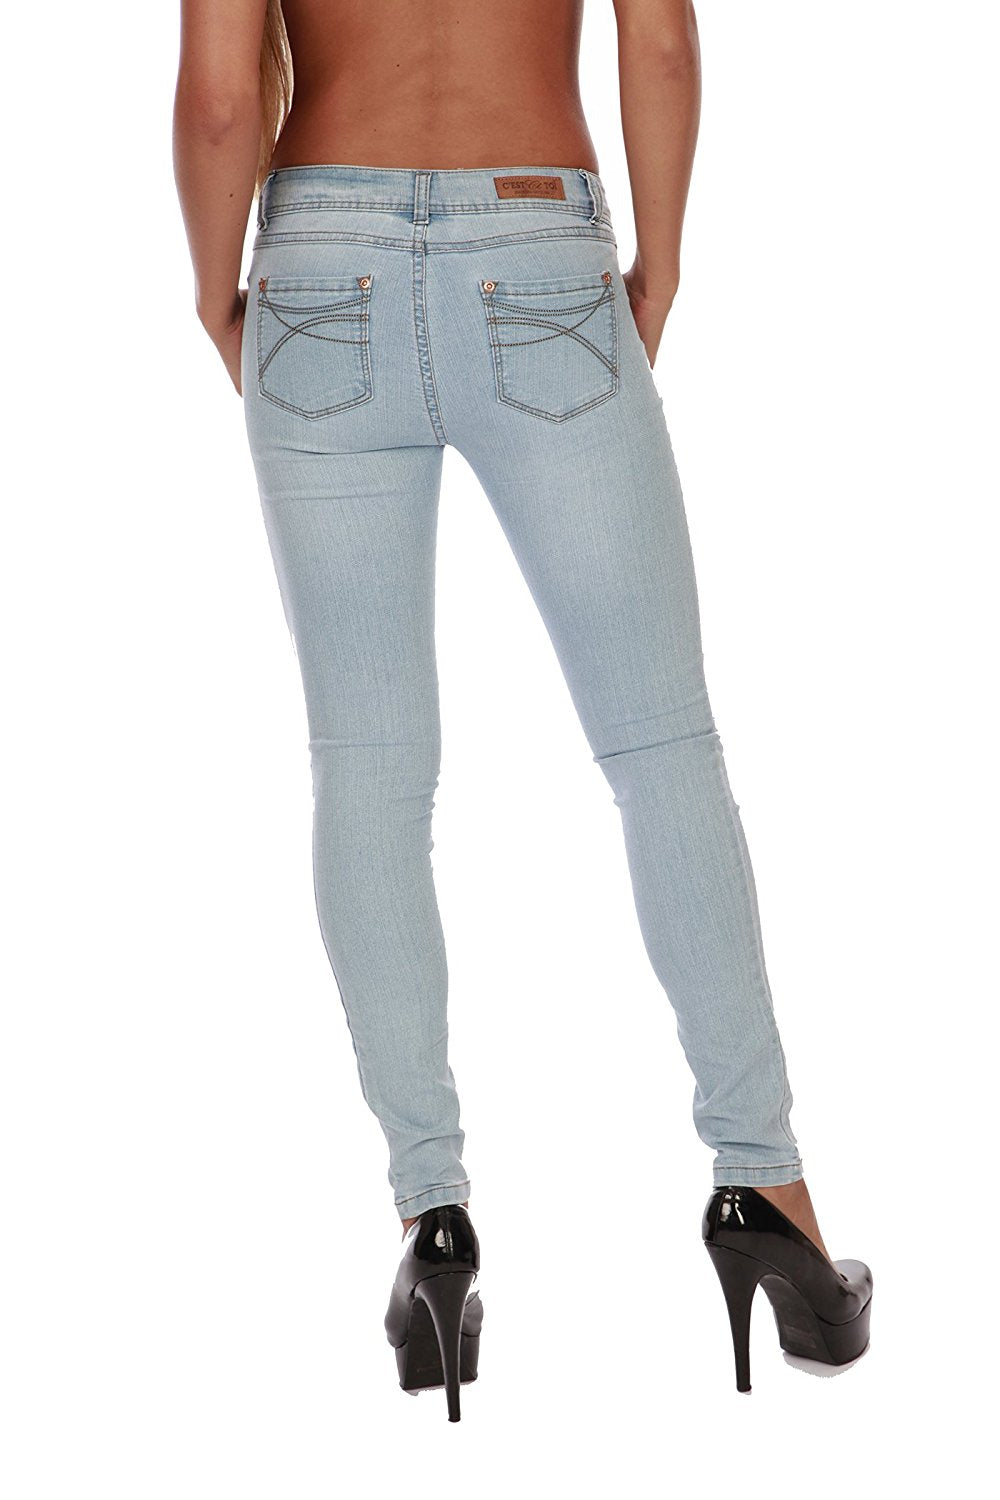 Hollywood Star Fashion Women's Basic Skinny Jeans Pants